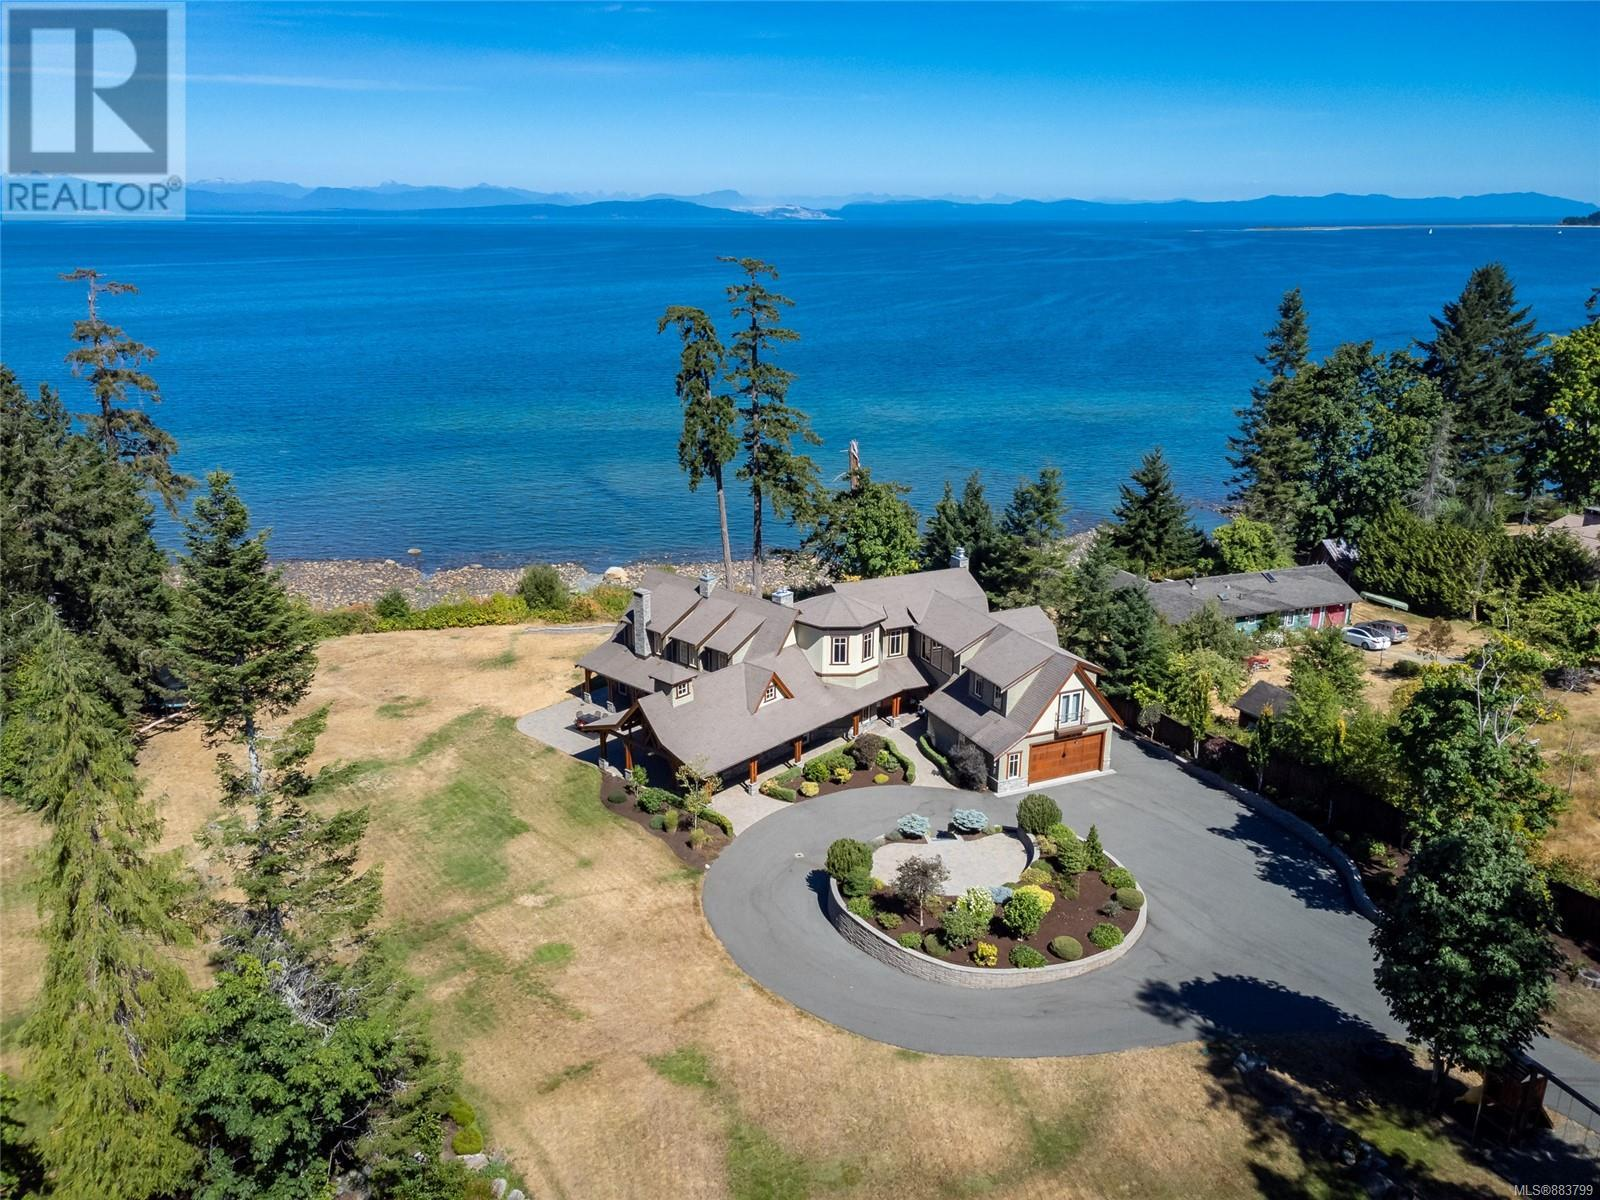 MLS® #883799 - Courtenay House For sale Image #90